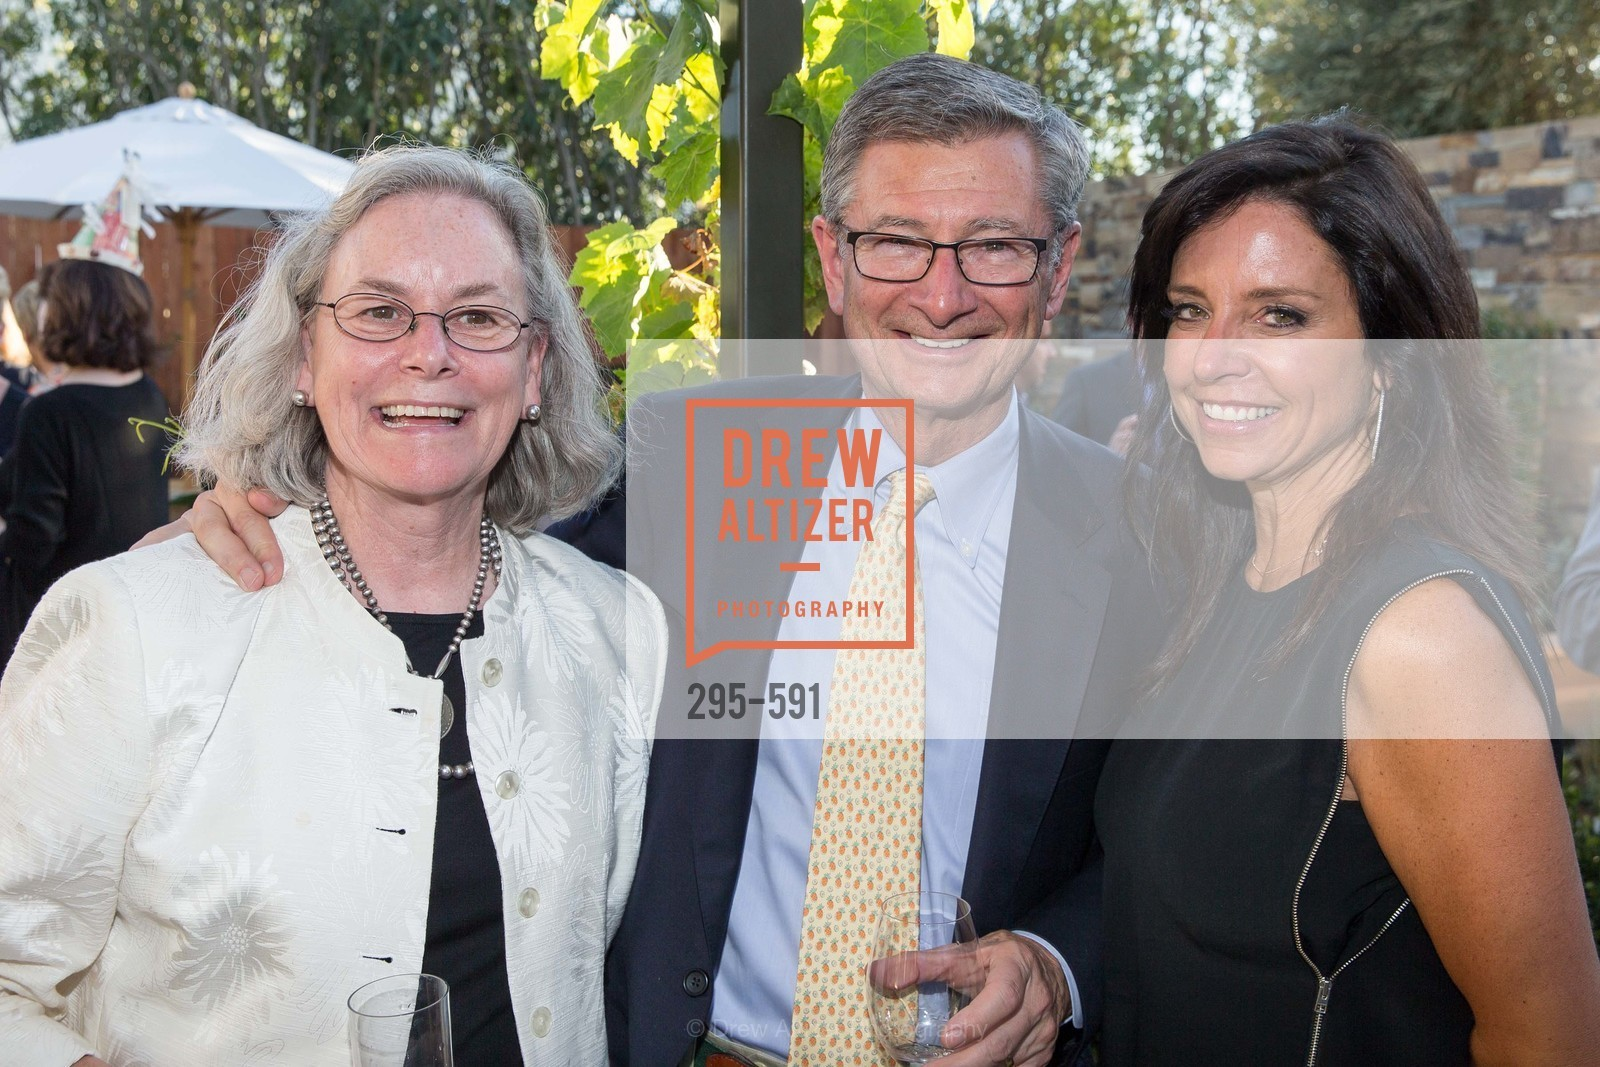 Ginger Connolly, Pat Connolly, Janice Greenwood, CHUCK WILLIAMS Birthday Celebration, US, October 3rd, 2014,Drew Altizer, Drew Altizer Photography, full-service agency, private events, San Francisco photographer, photographer california